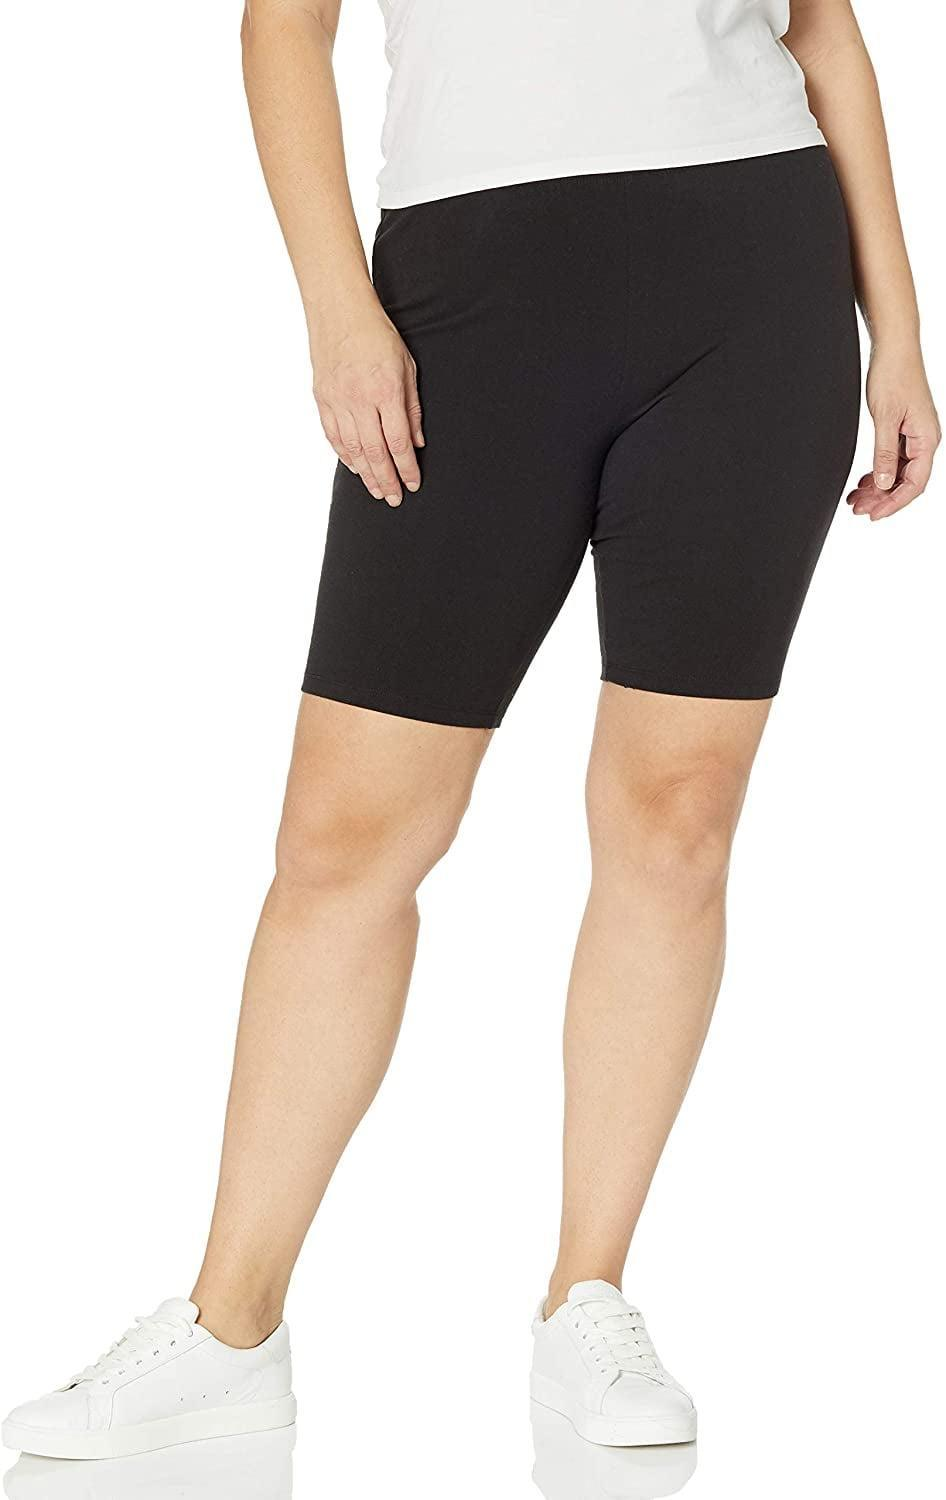 <p>You can't go wrong with these <span>Just My Size Stretch Jersey Bike Shorts</span> ($10, originally $12). If you have curves, these will be your new favorites.</p>